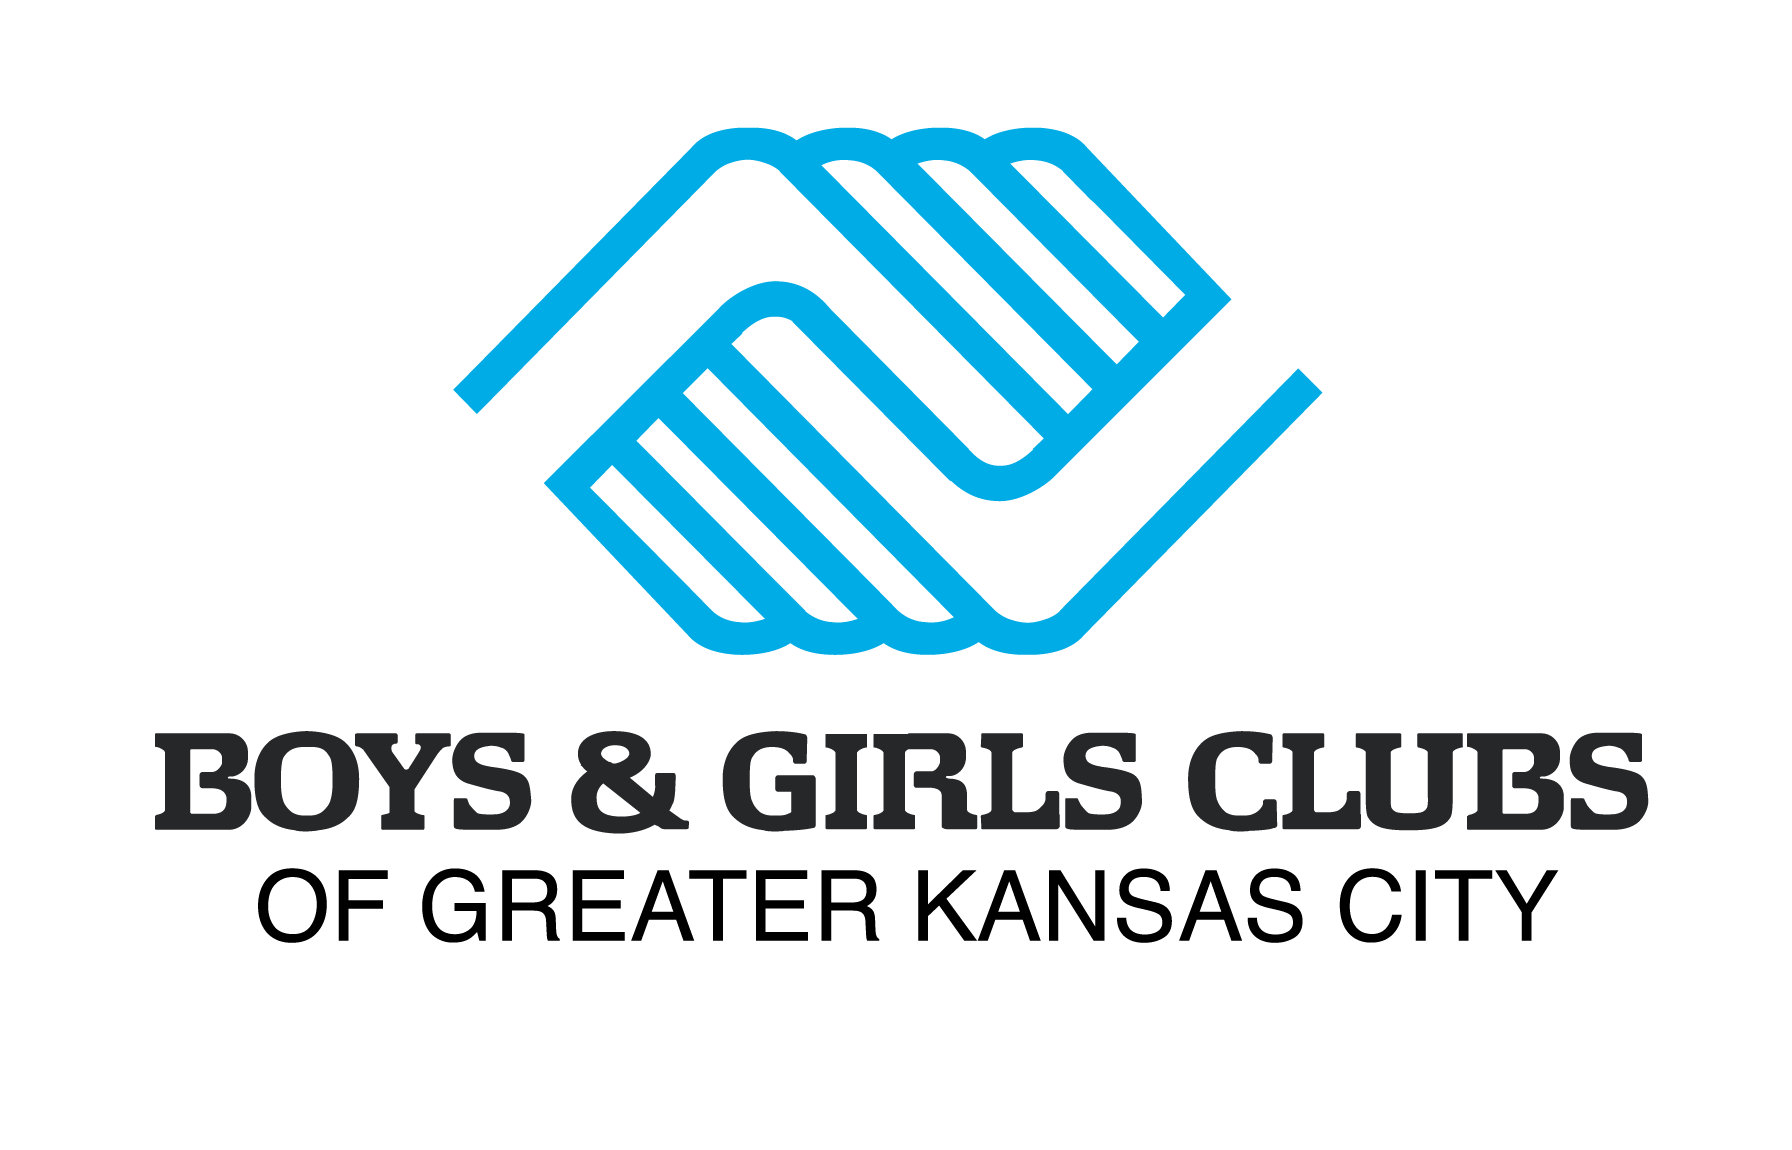 Boys & Girls Club of Greater Kansas City